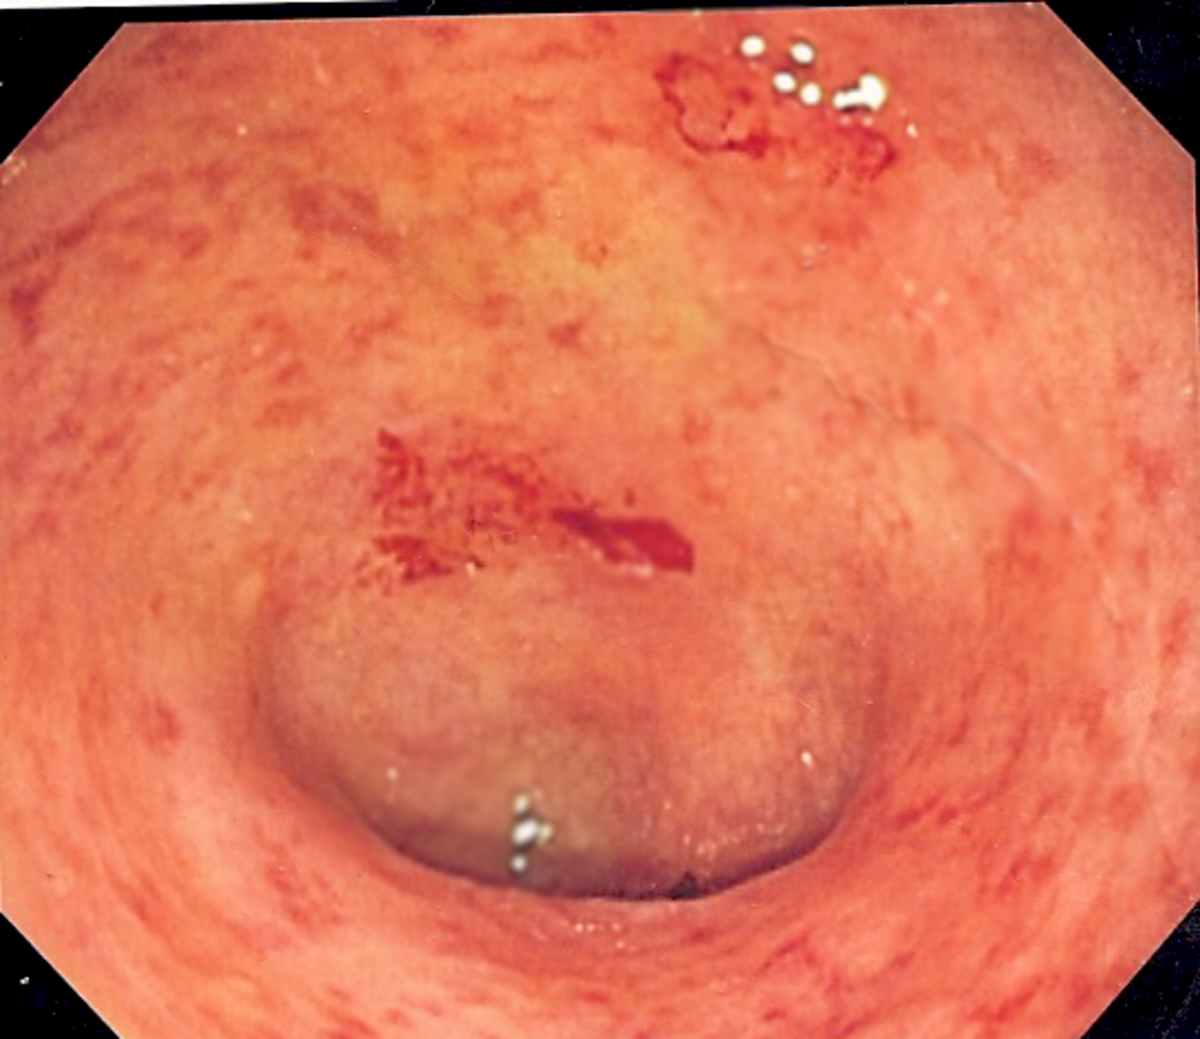 Ulcerations from ulcerative colitis. These are pretty mild in comparison to what I have seen.